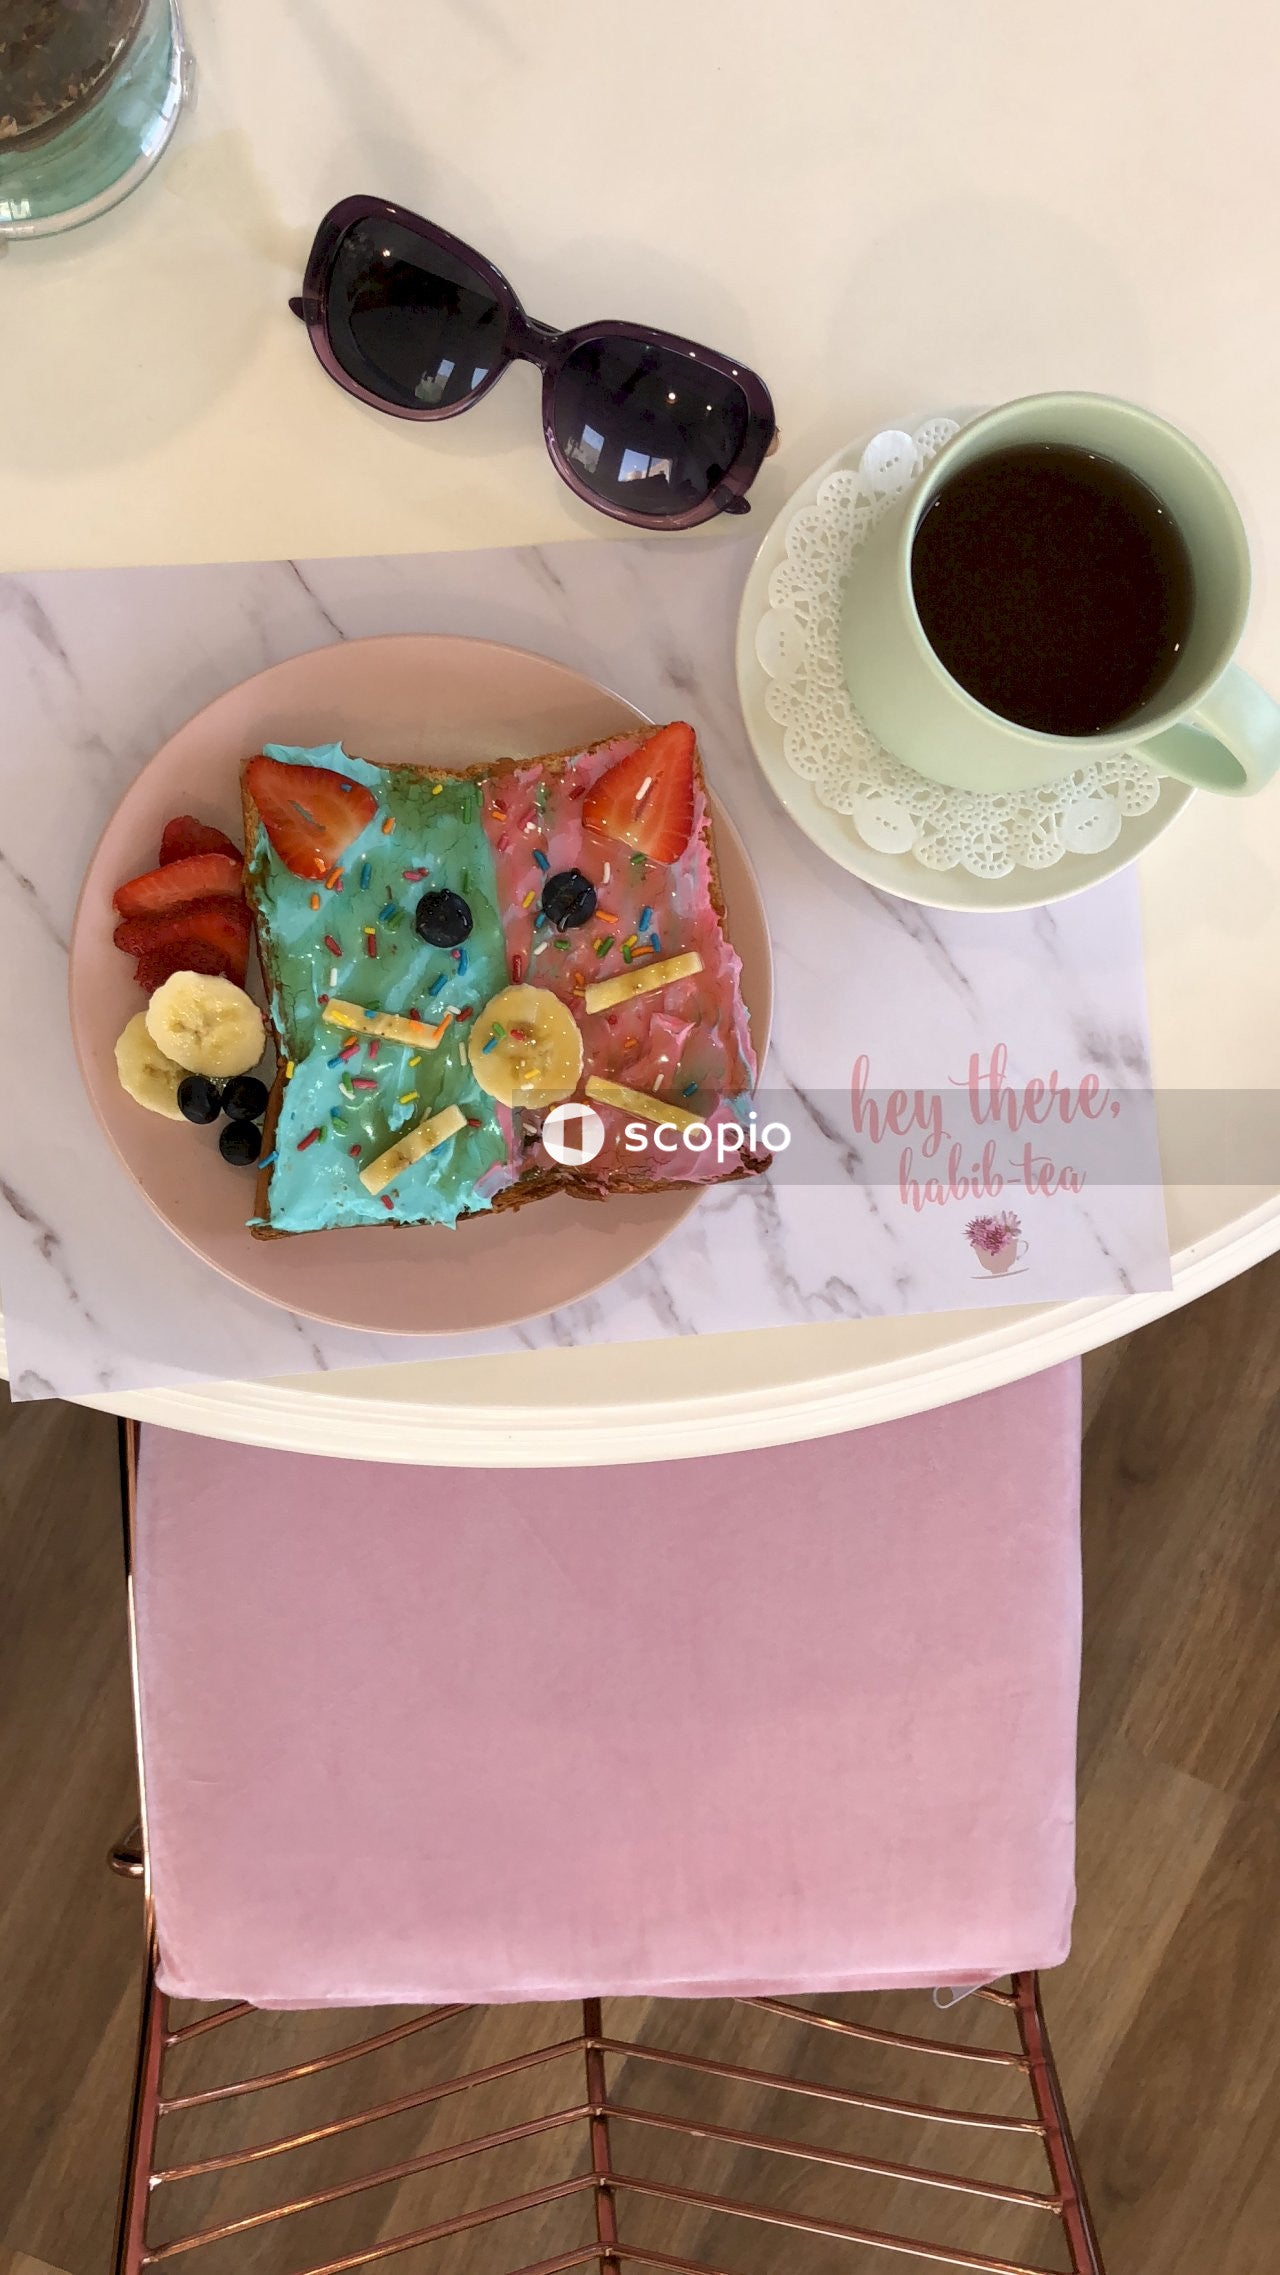 Foods on table